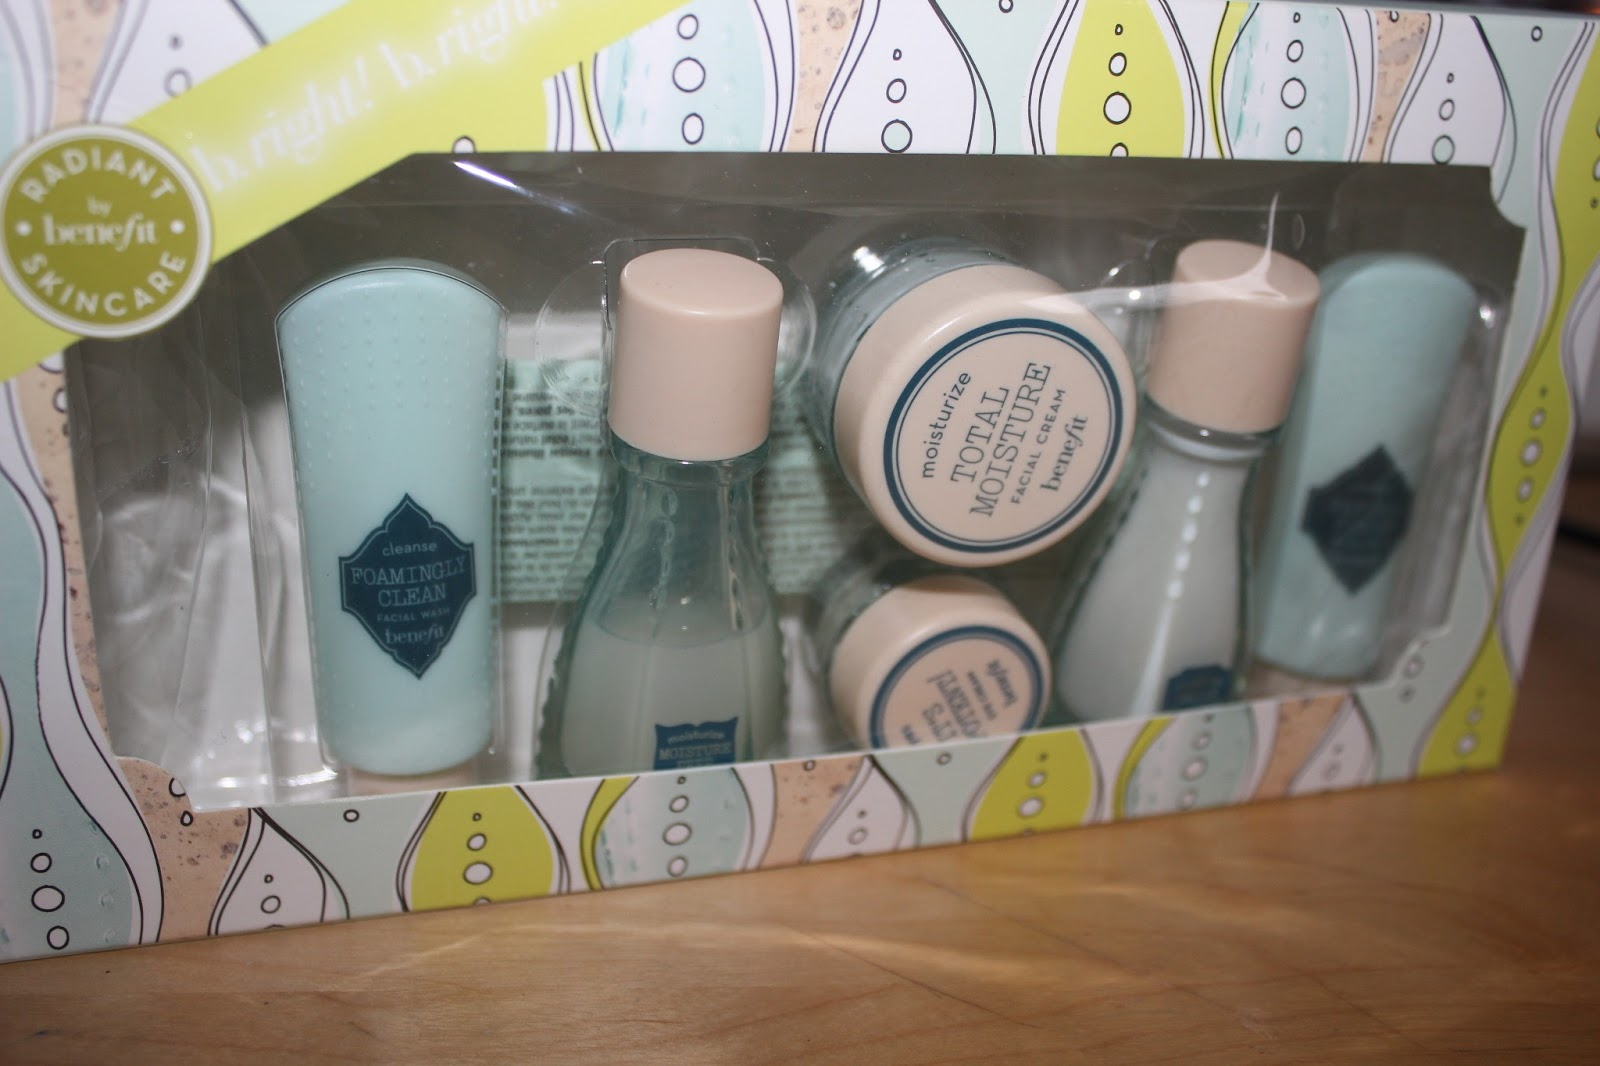 Moisture Prep Toning Lotion by Benefit #5